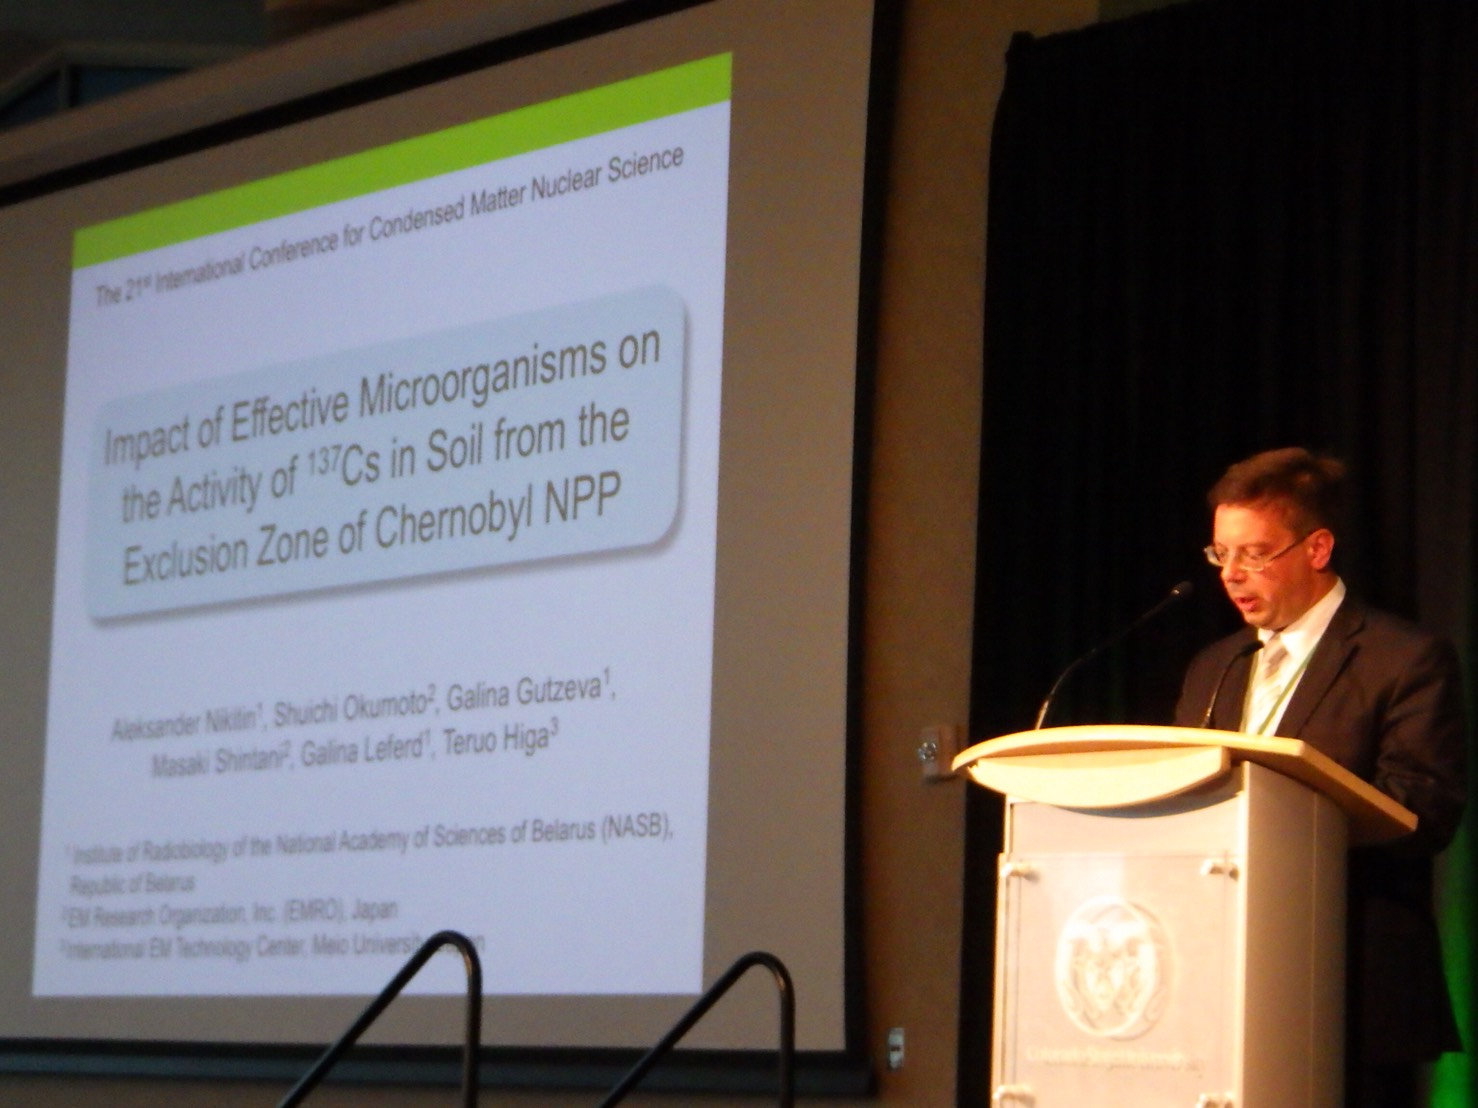 Dr. Nikitin's presentation at ICCF-21, Colorado State University